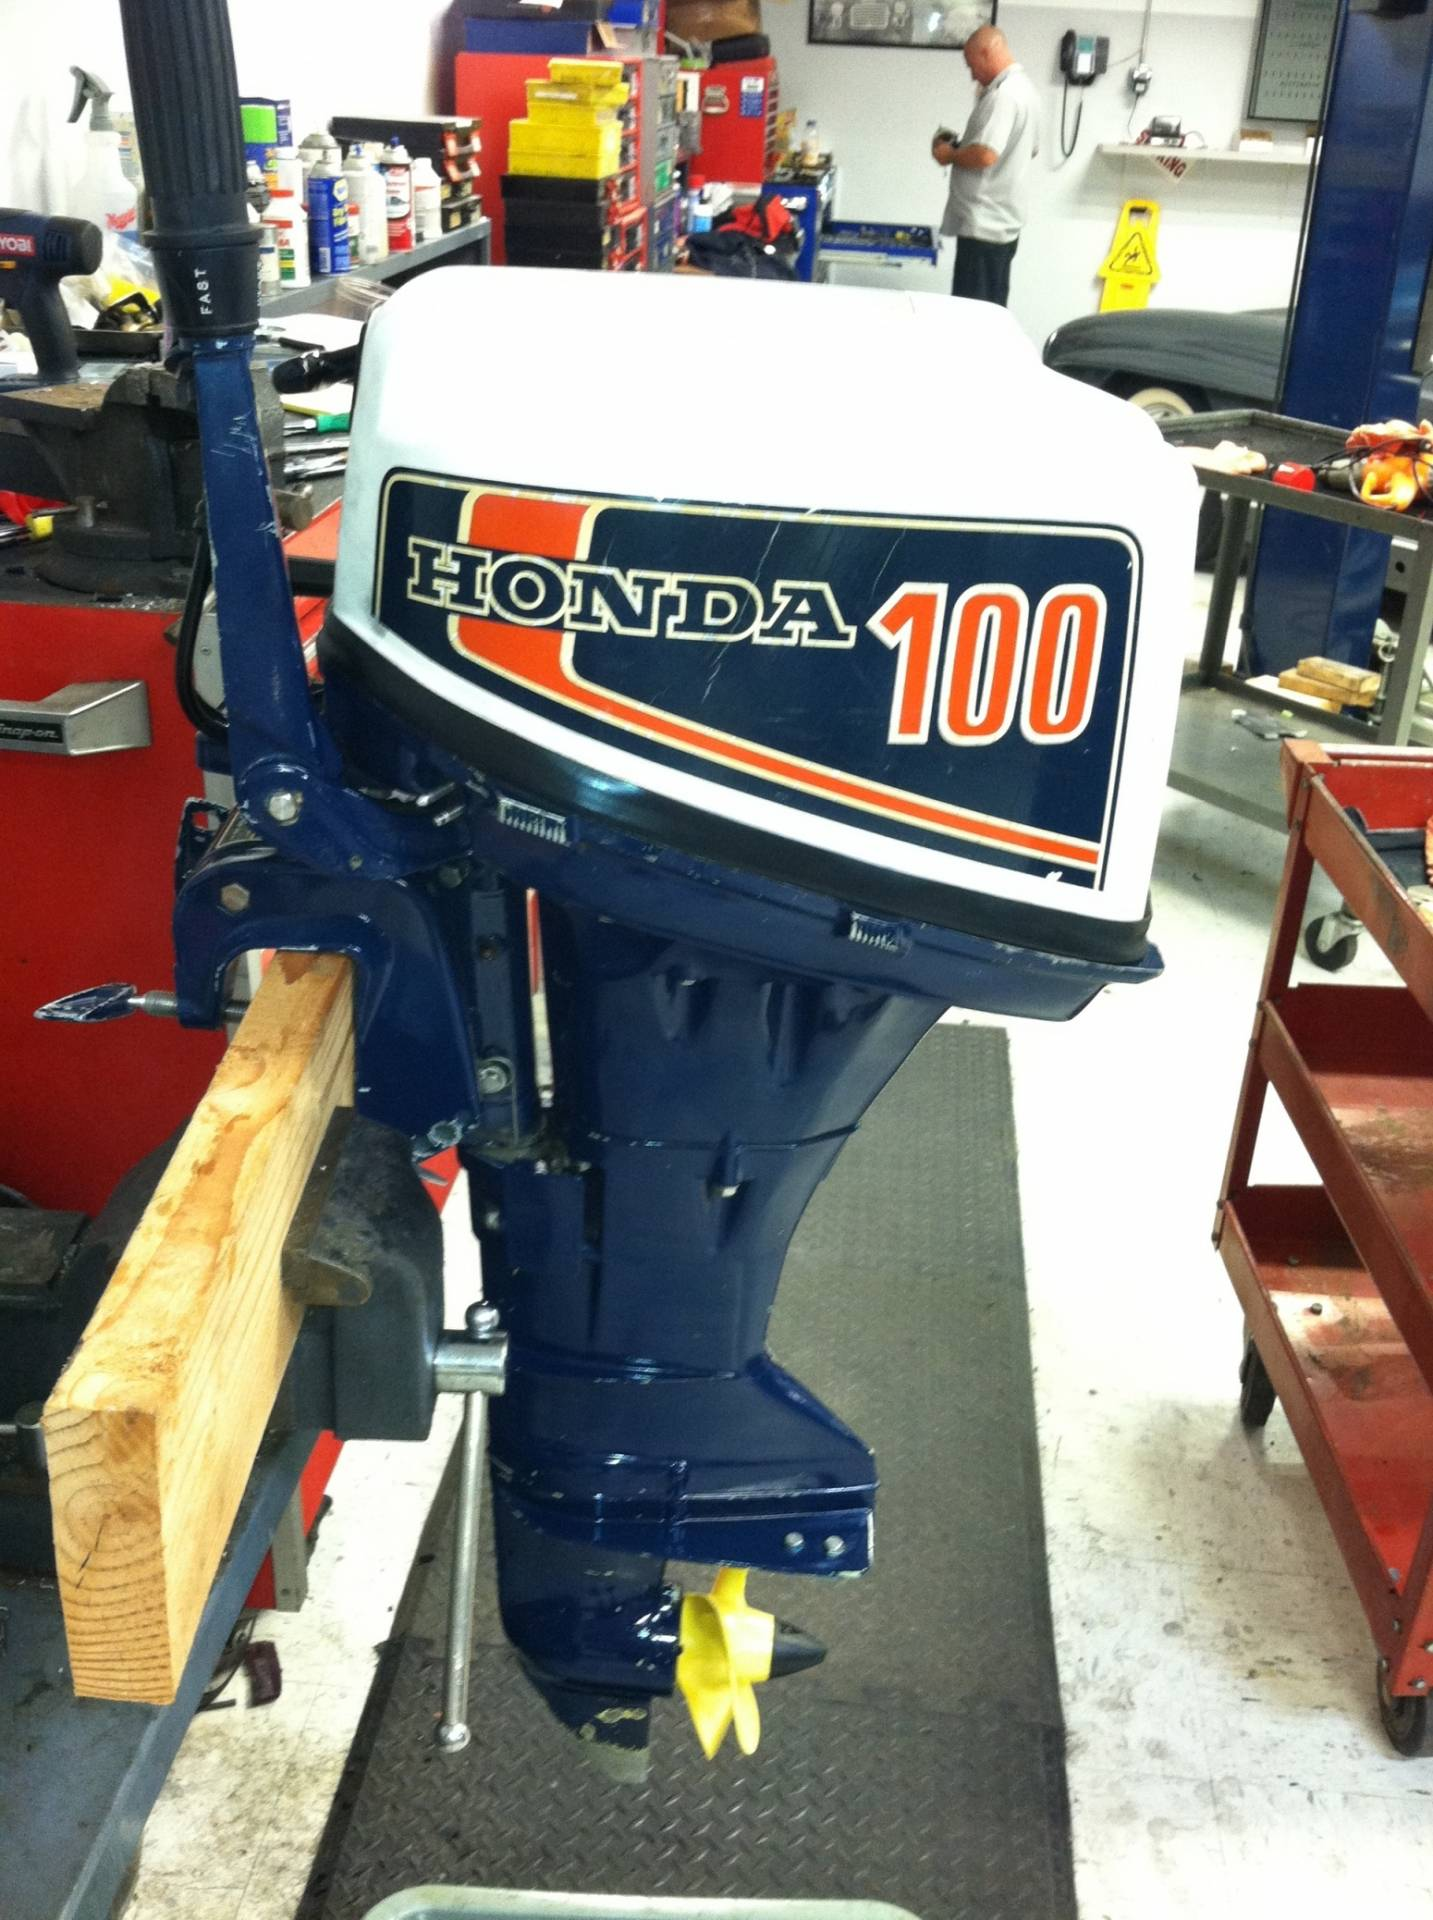 4 stroke honda 10 hp b100s outboard motor bloodydecks for Honda outboard motor sales